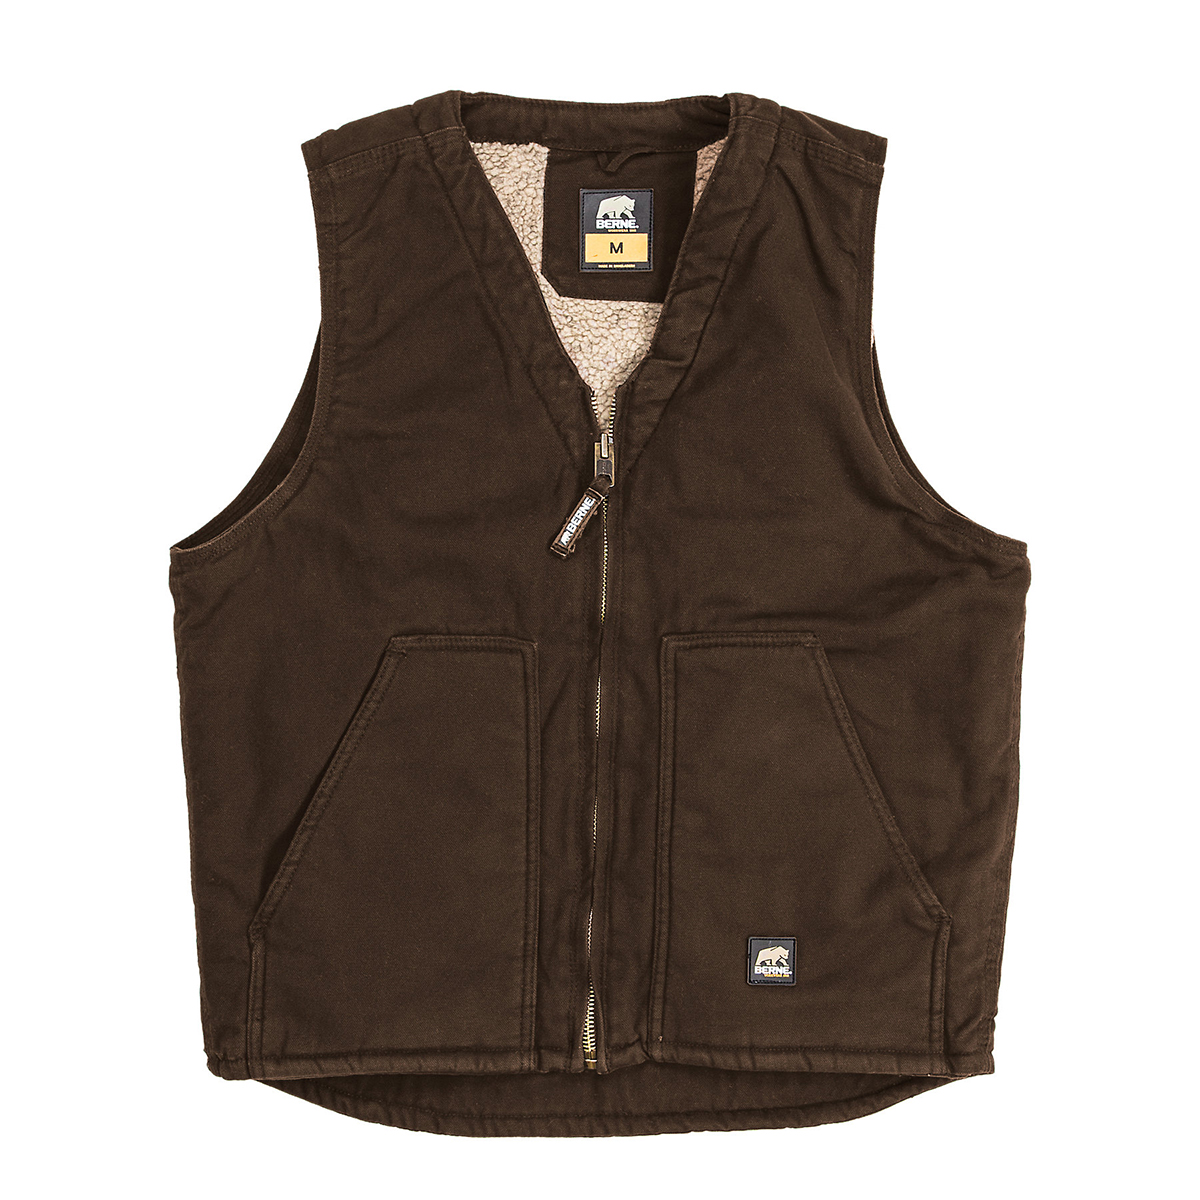 Berne-Washed-V-Neck-Vest-Big-Tall-BigCamo-Workwear-Casual-Bark